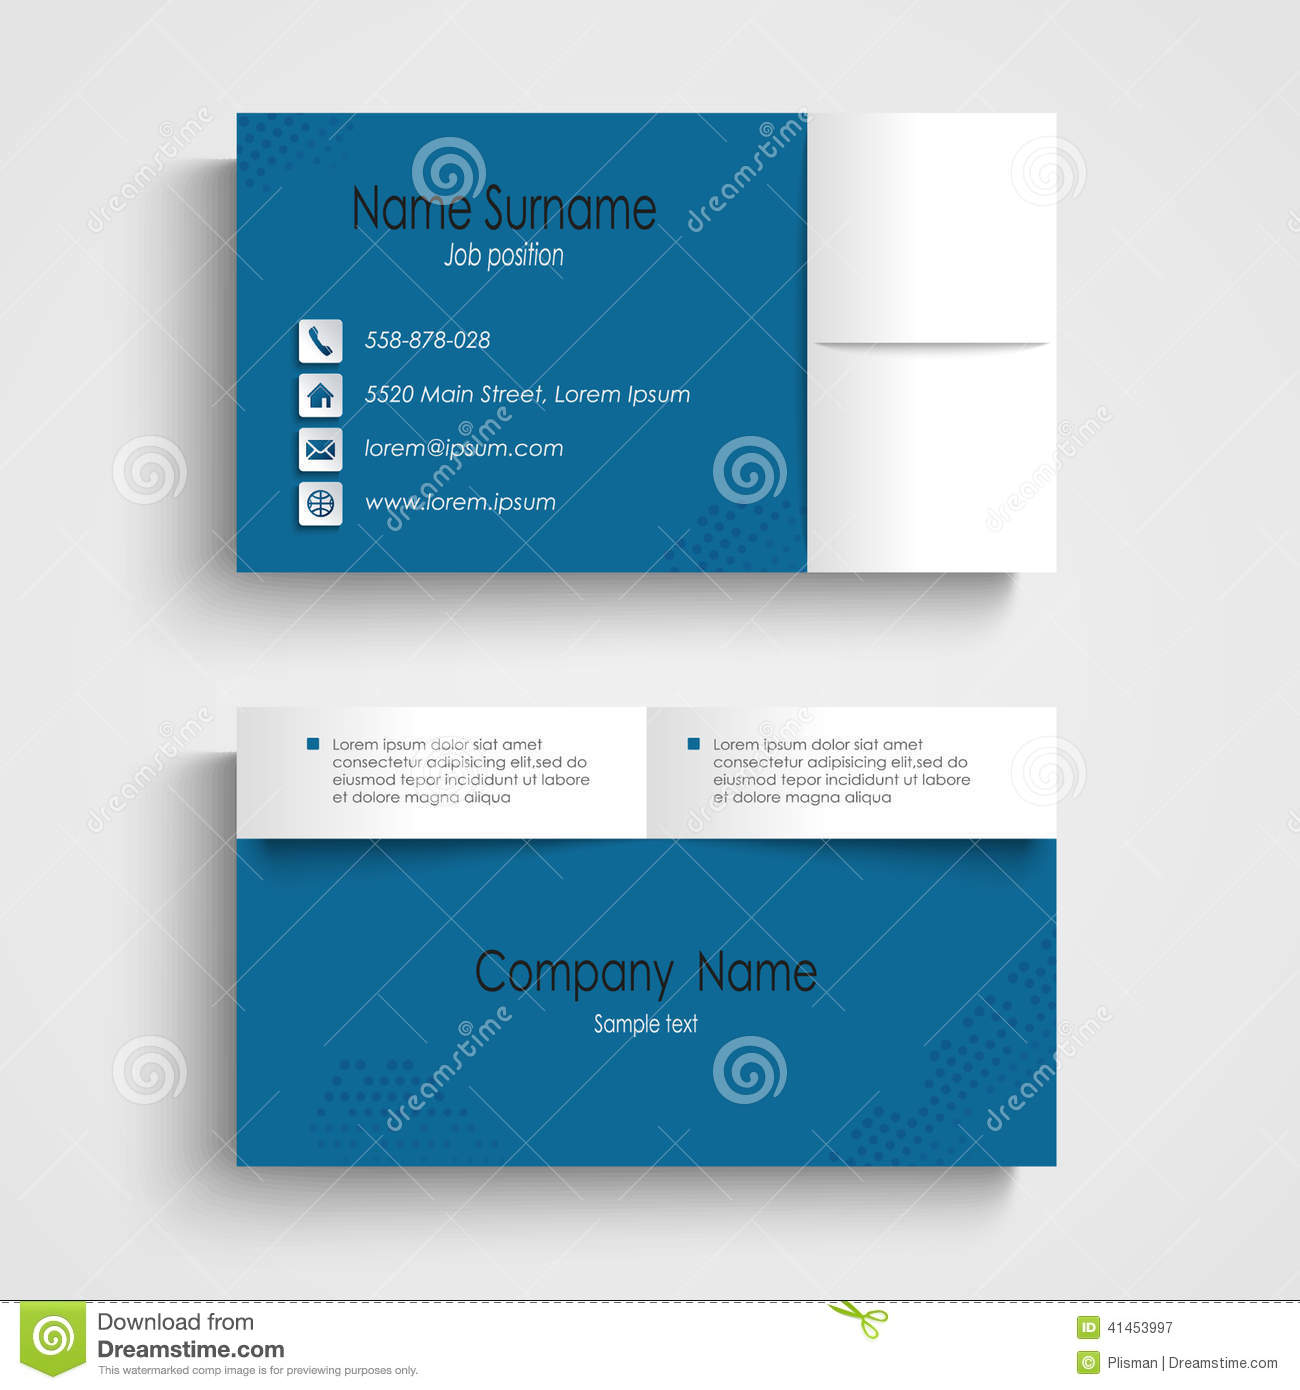 Modern sample blue business card template stock vector modern sample blue business card template flashek Images